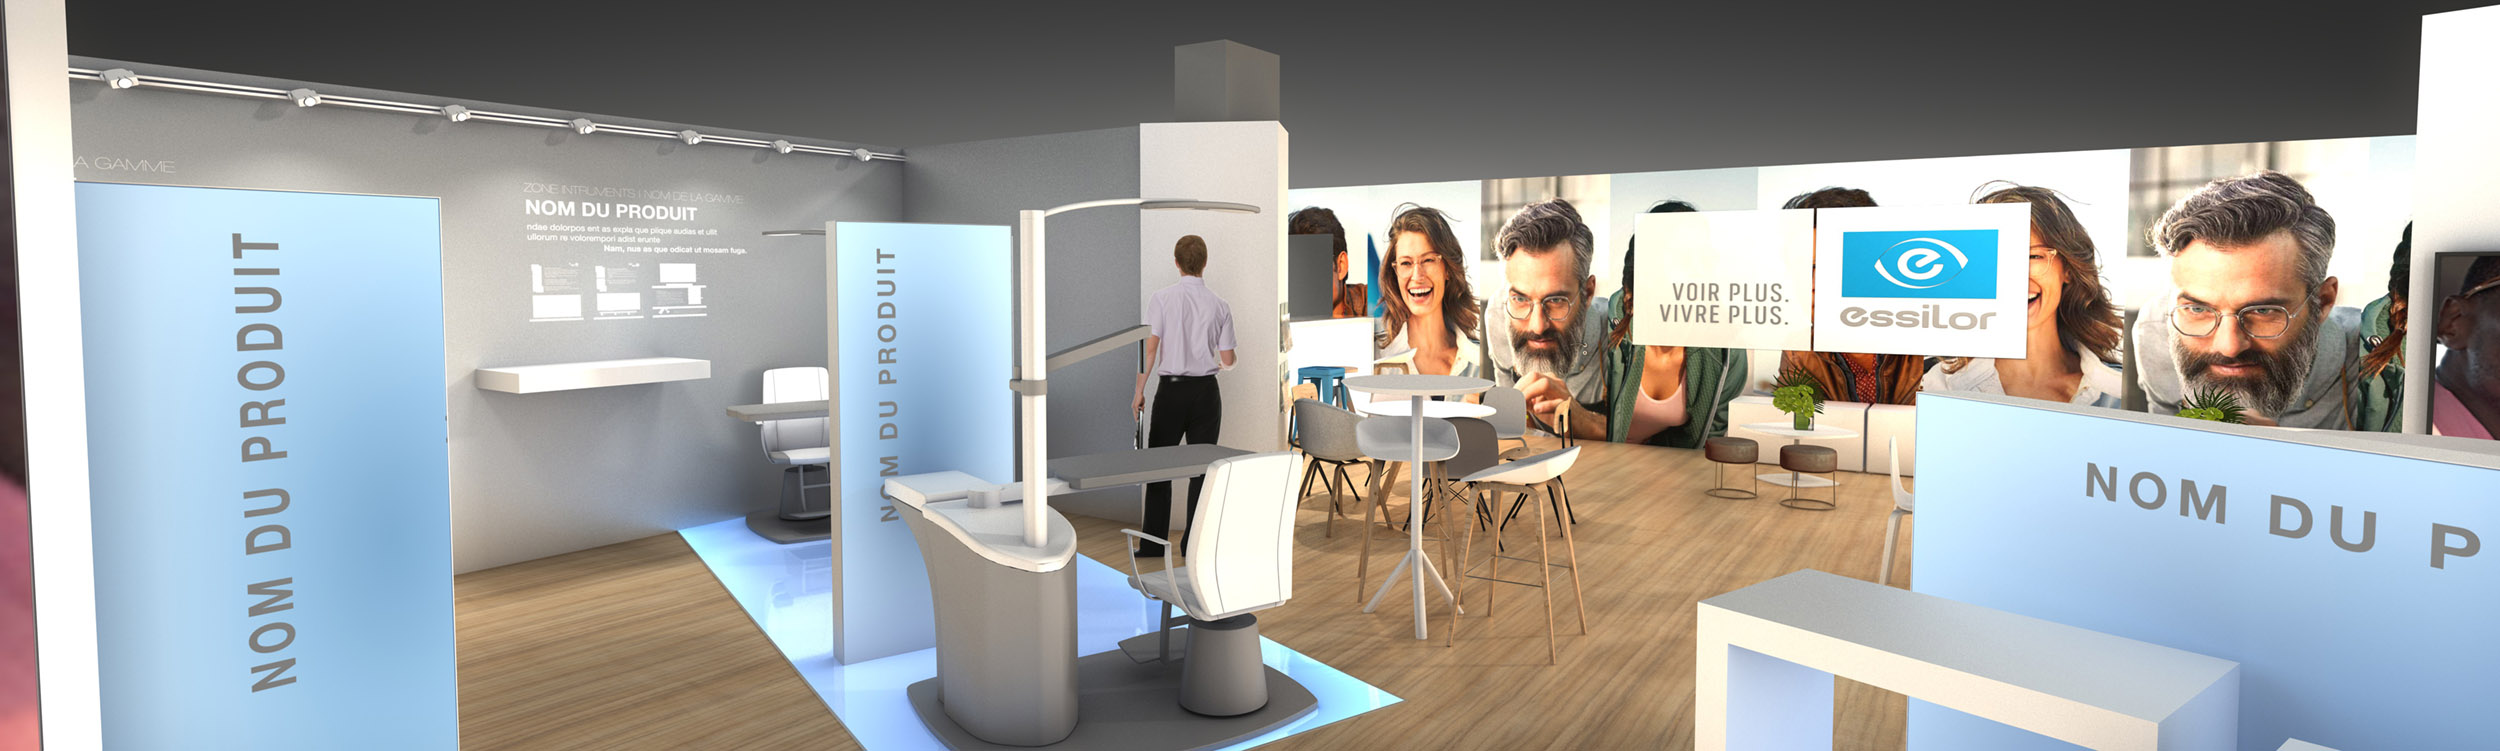 stand booth essilor sfo 15.jpg